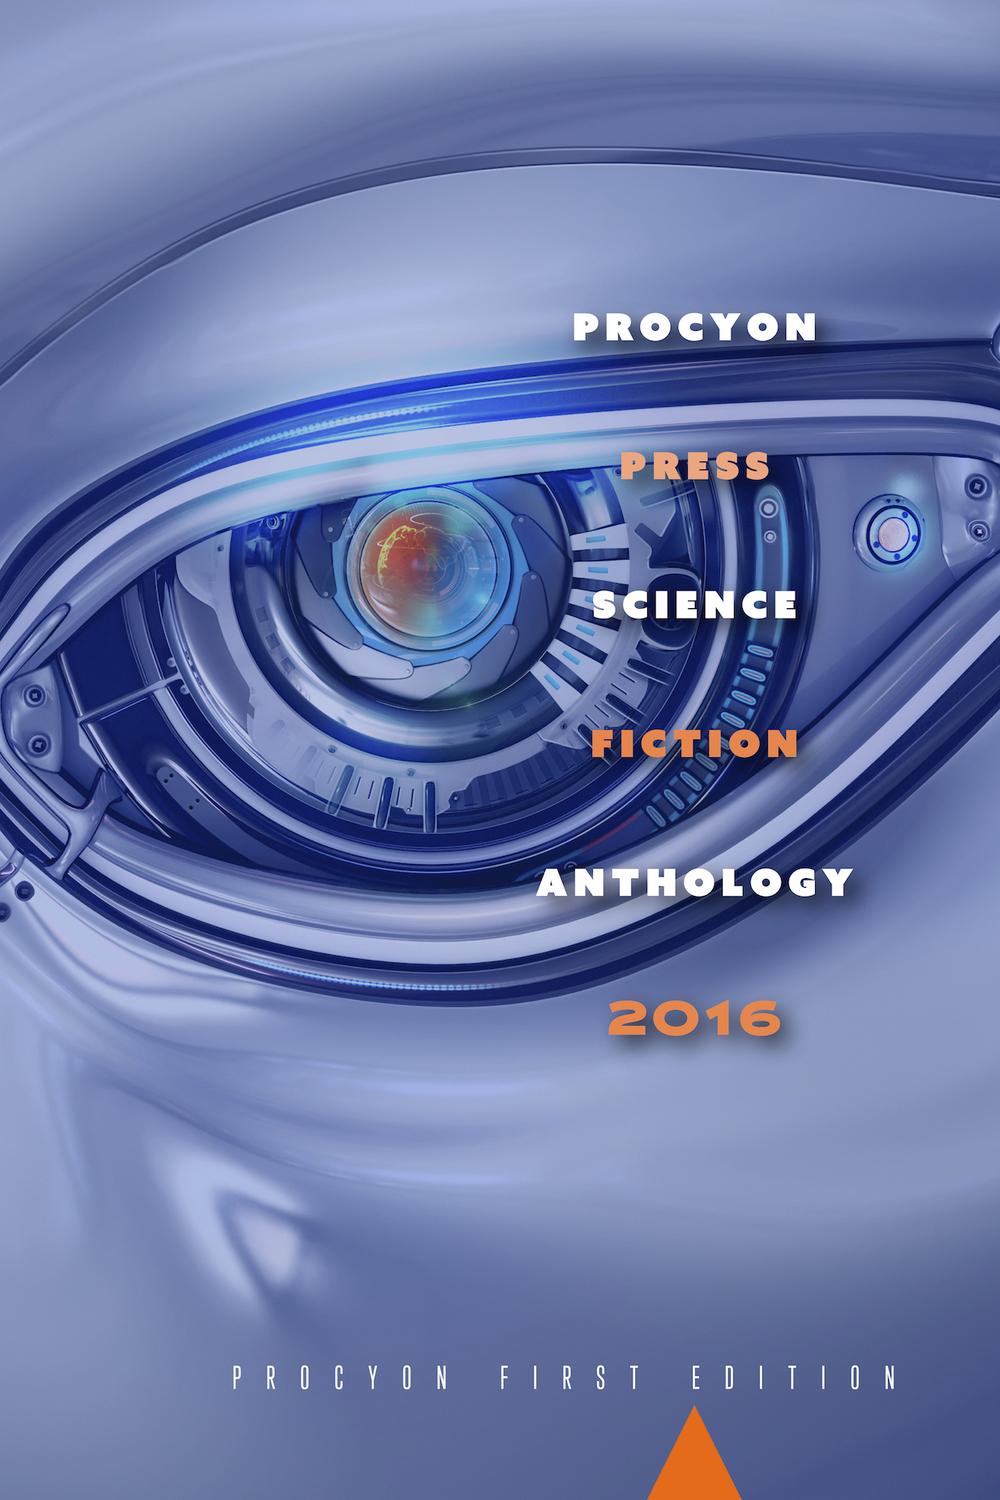 Procyon Press Sci-Fi Anthology - FrontCover - Final copy.jpg